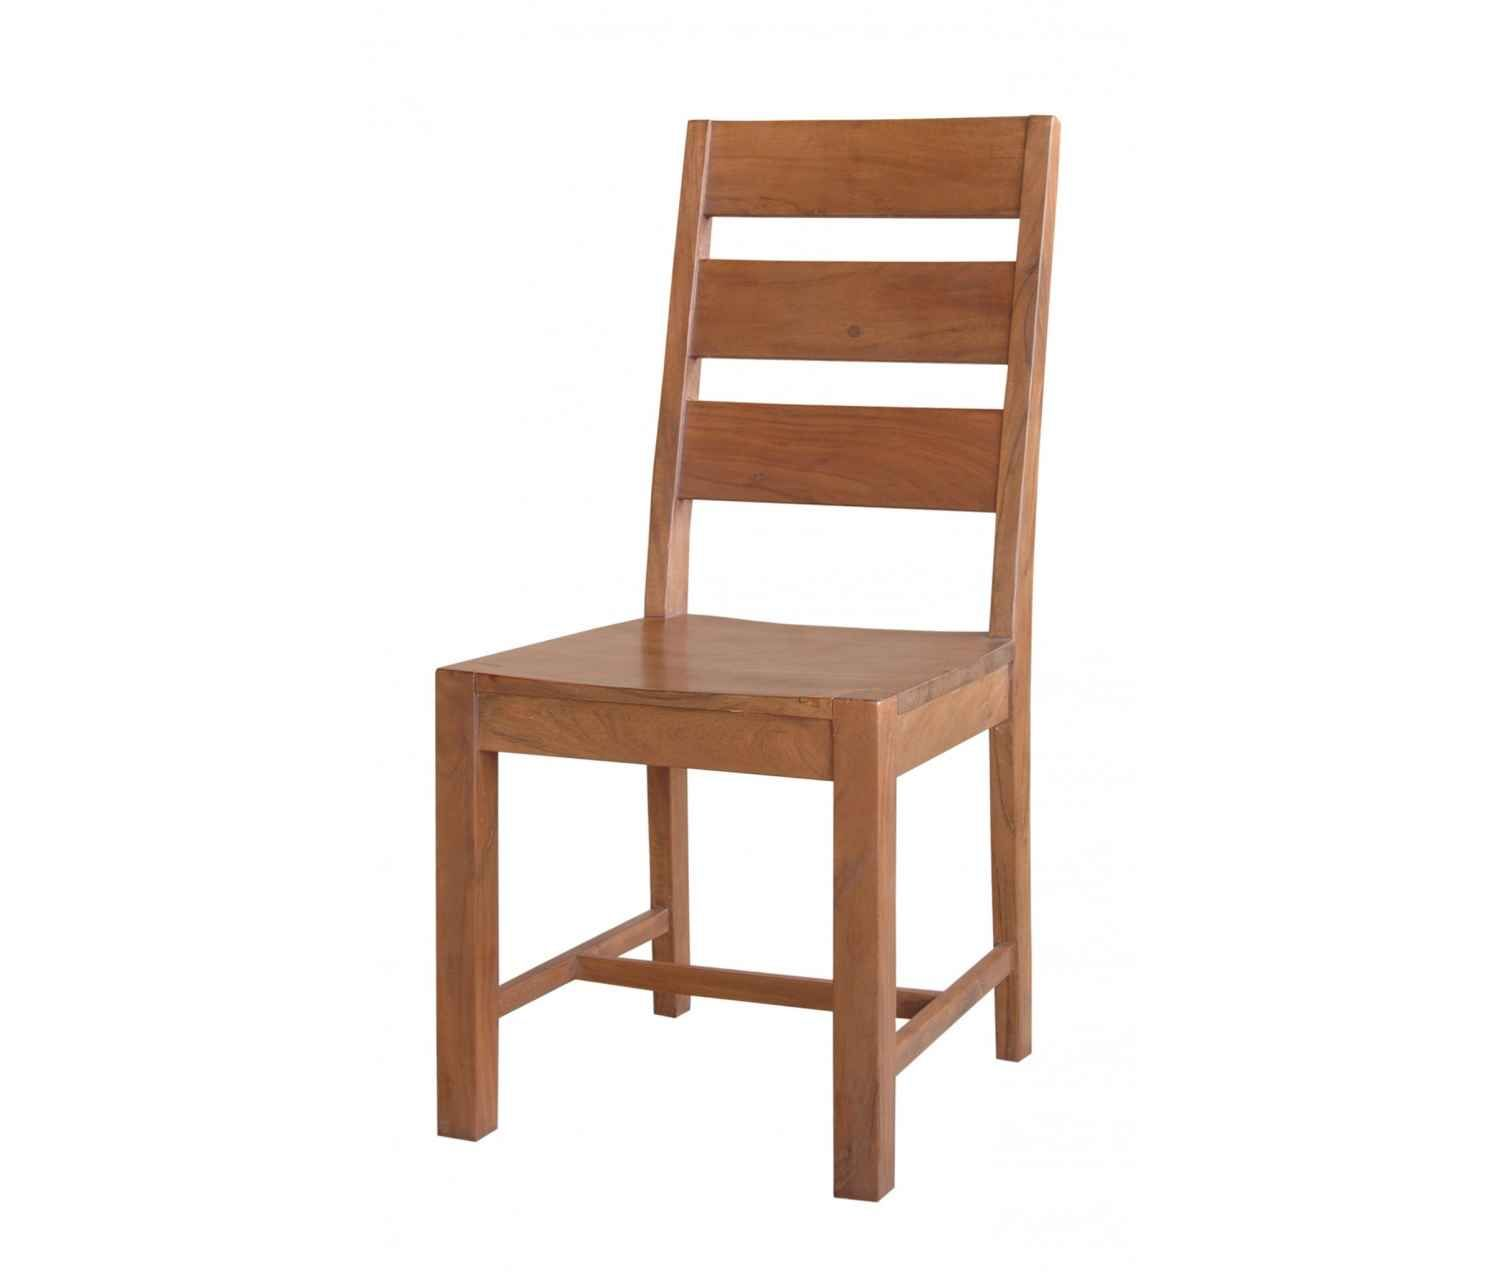 Best Wood Chairs Diy Wooden Dining Room Chair Furniture 400 x 300